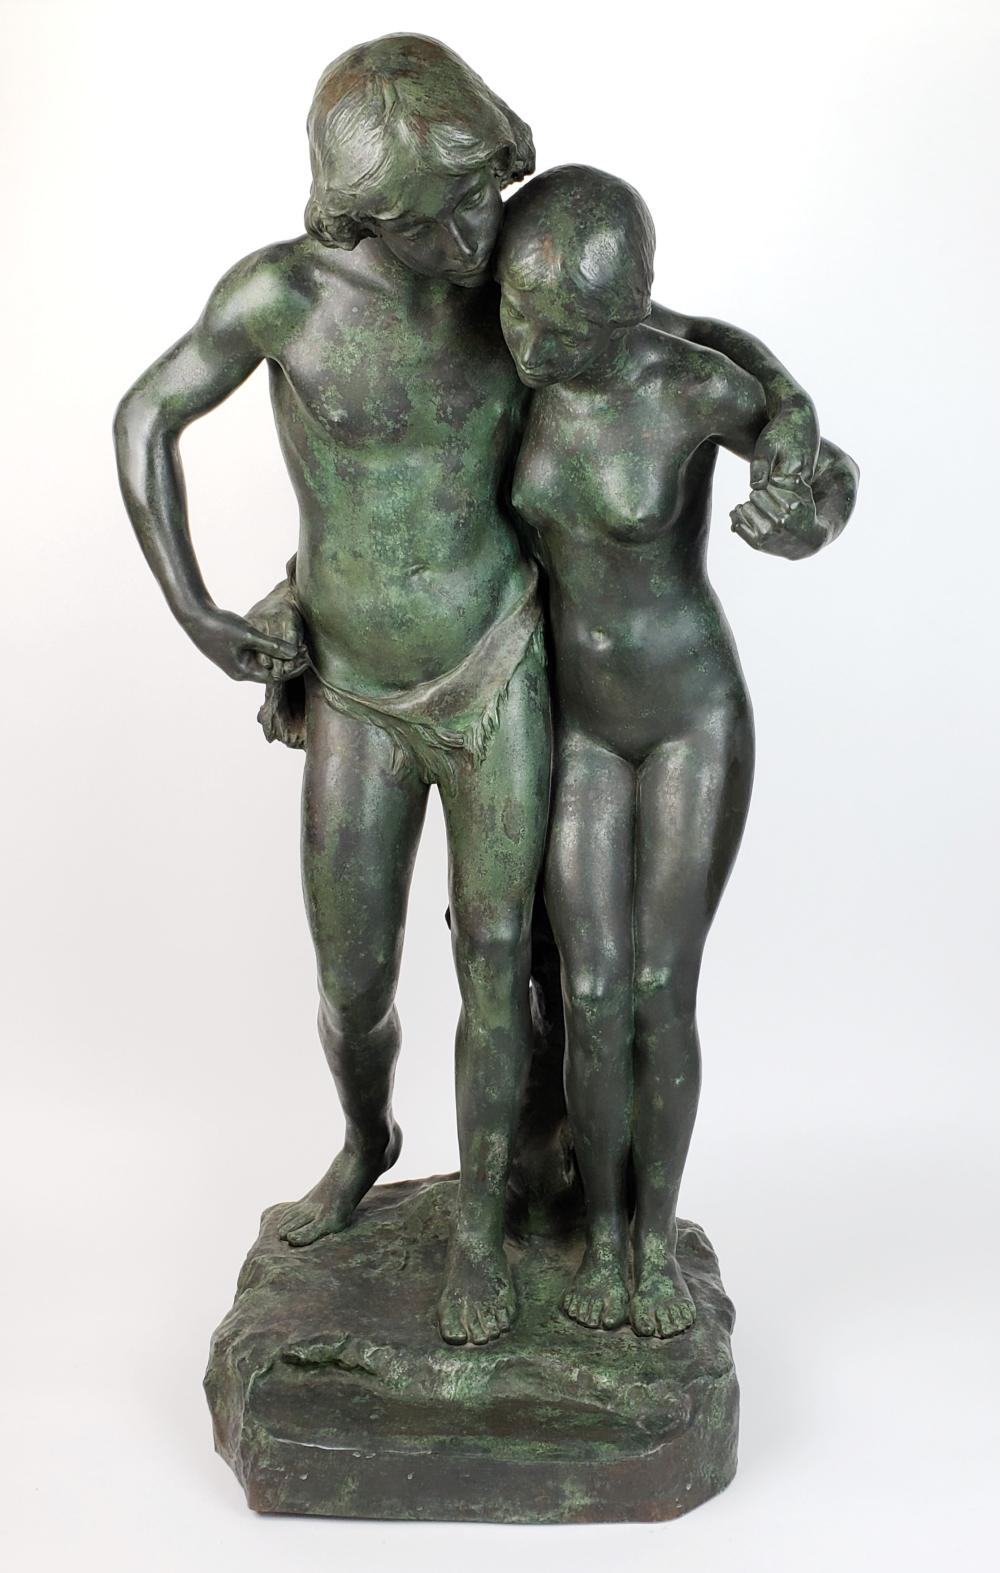 """19th C. Bronze Statue """"Paul & Virginia"""", Signed J. Escoula with Foundry Stamp"""